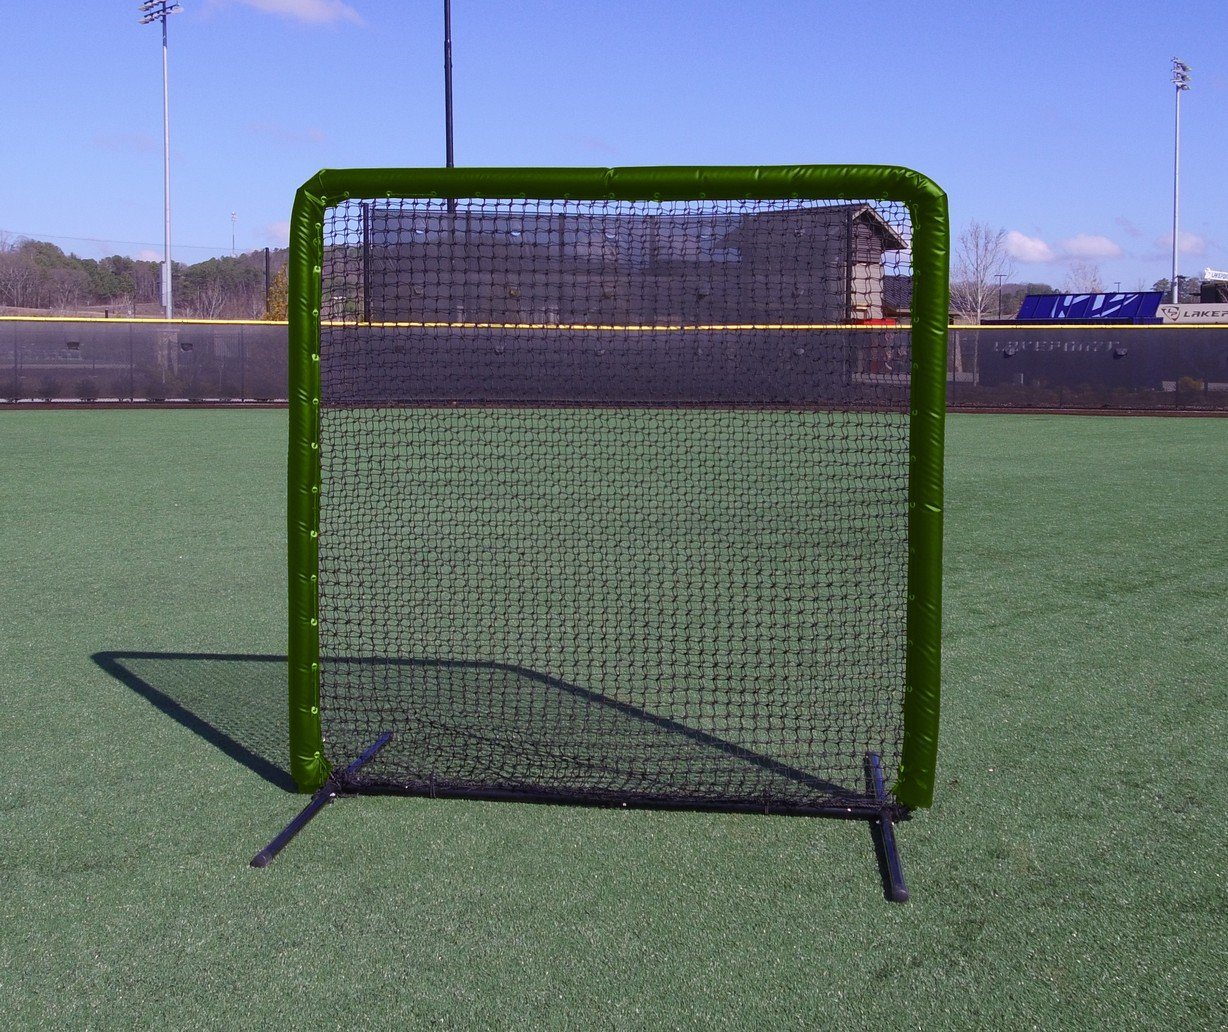 Armor Series 7X7 Protective Screen with Screen Bulletz. Baseball/Softball Padded Practice Screen Net with Vinyl Padding. Choose Color! (Green) by Armor